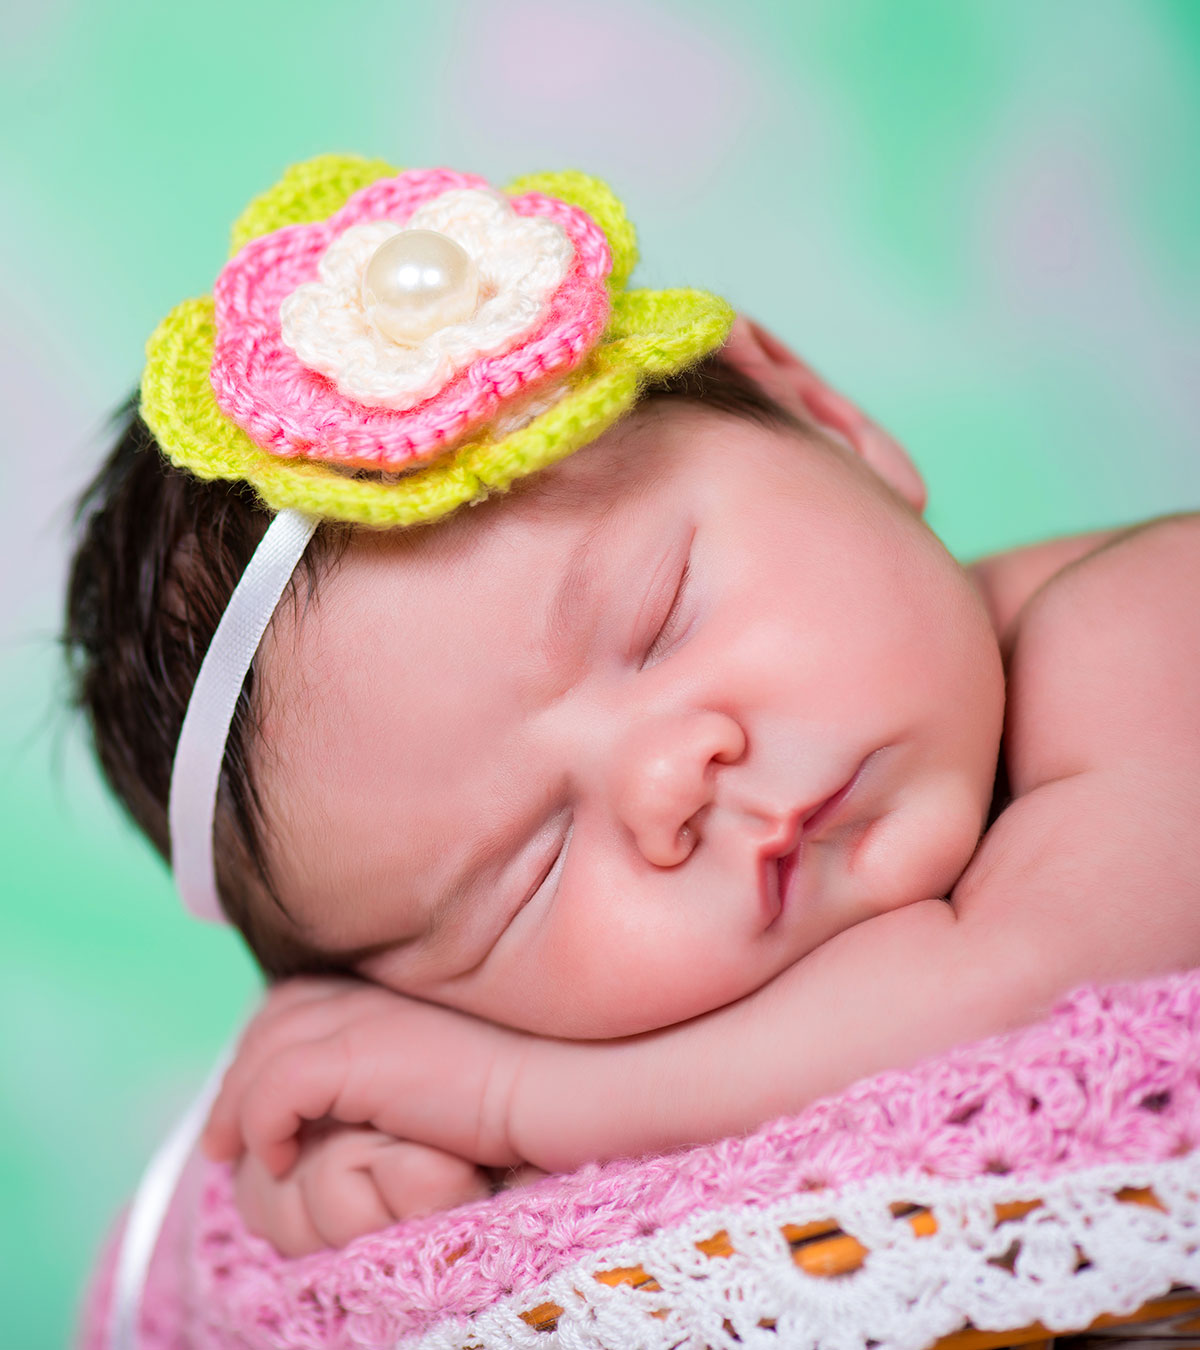 Astrological Baby Names By Nakshatra Or Birth Star For Boys And Girls